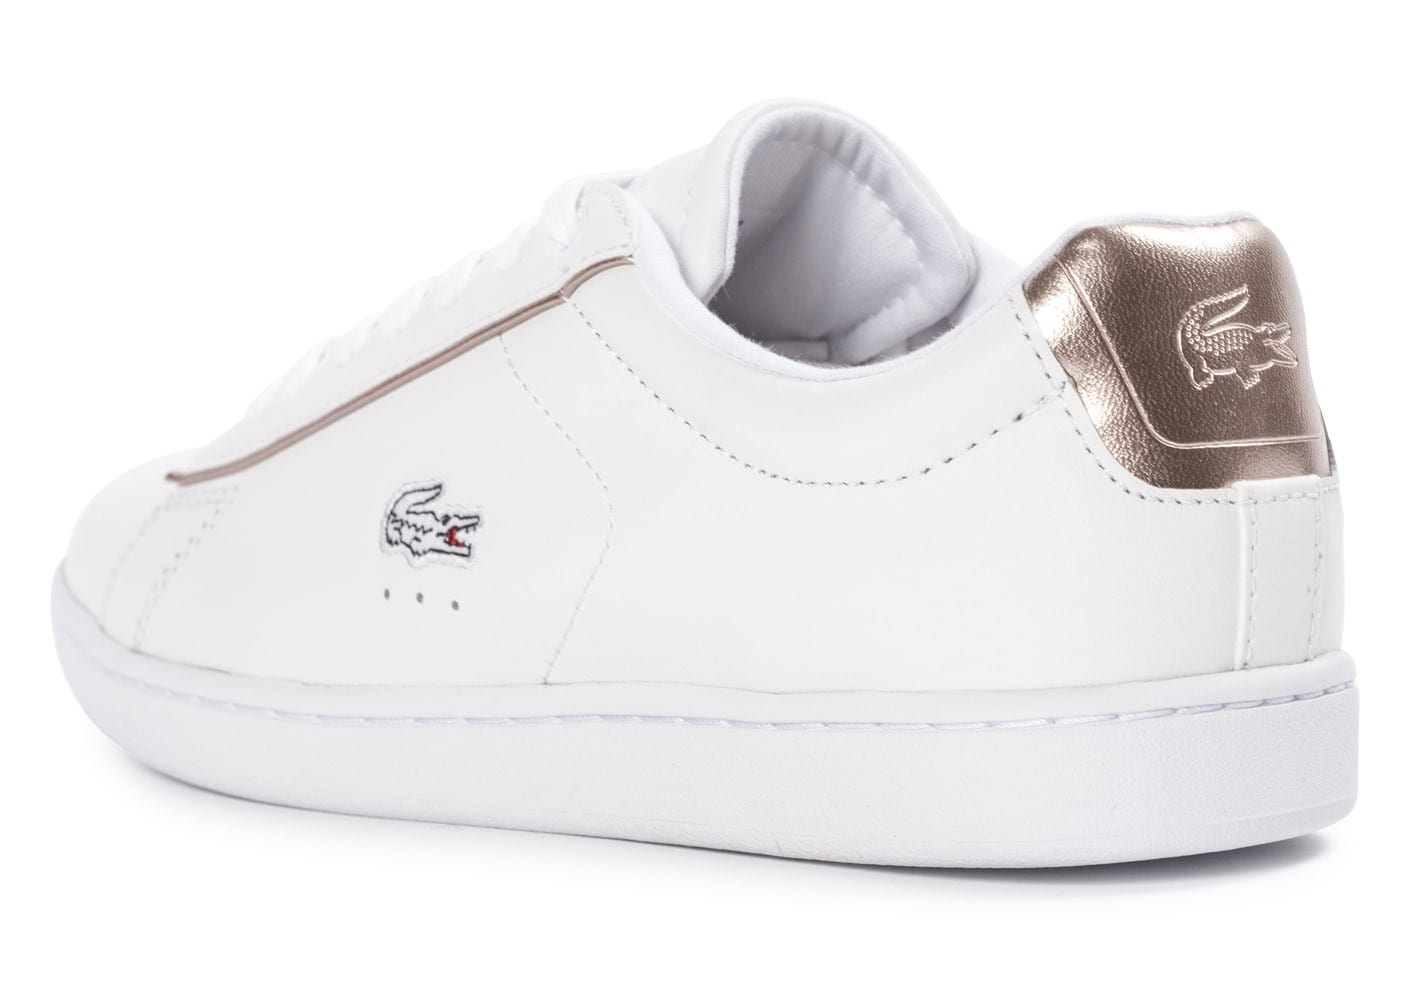 Lacoste carnaby evo blanche chaussures chaussures - Lacoste carnaby evo cls baskets en cuir perfore ...